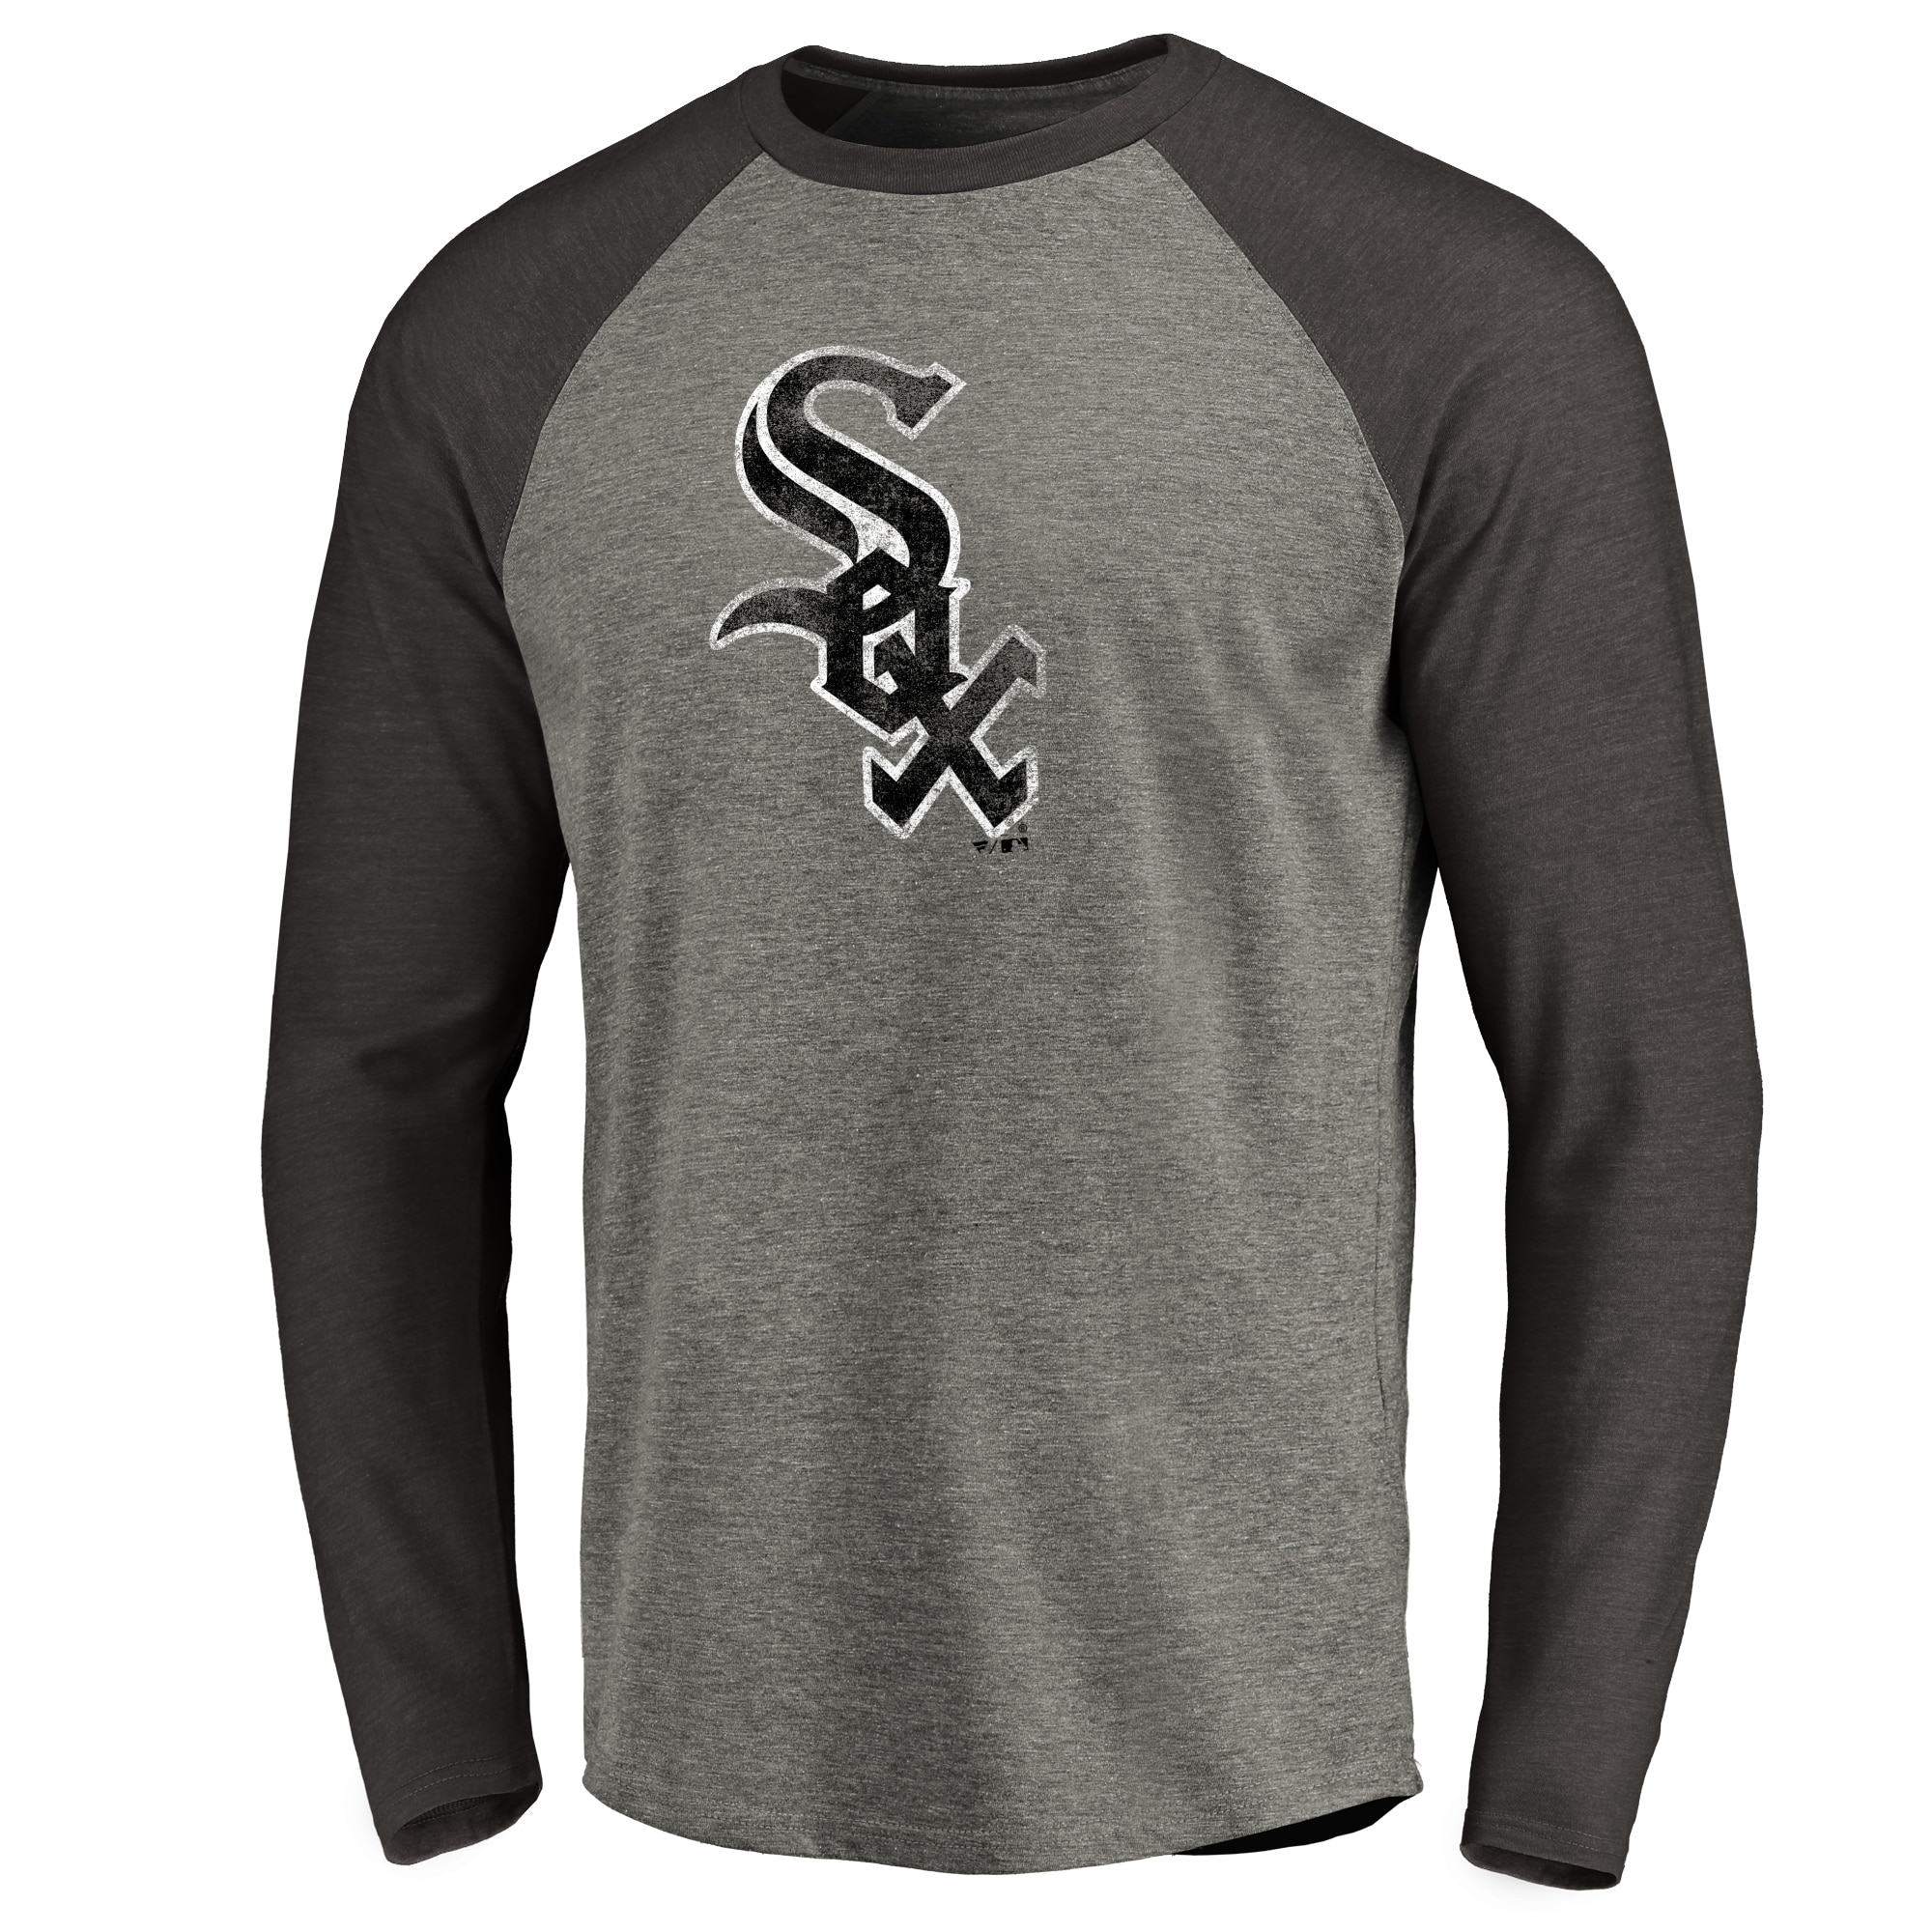 Chicago White Sox Distressed Team Raglan Tri-Blend Long Sleeve T-Shirt - Ash